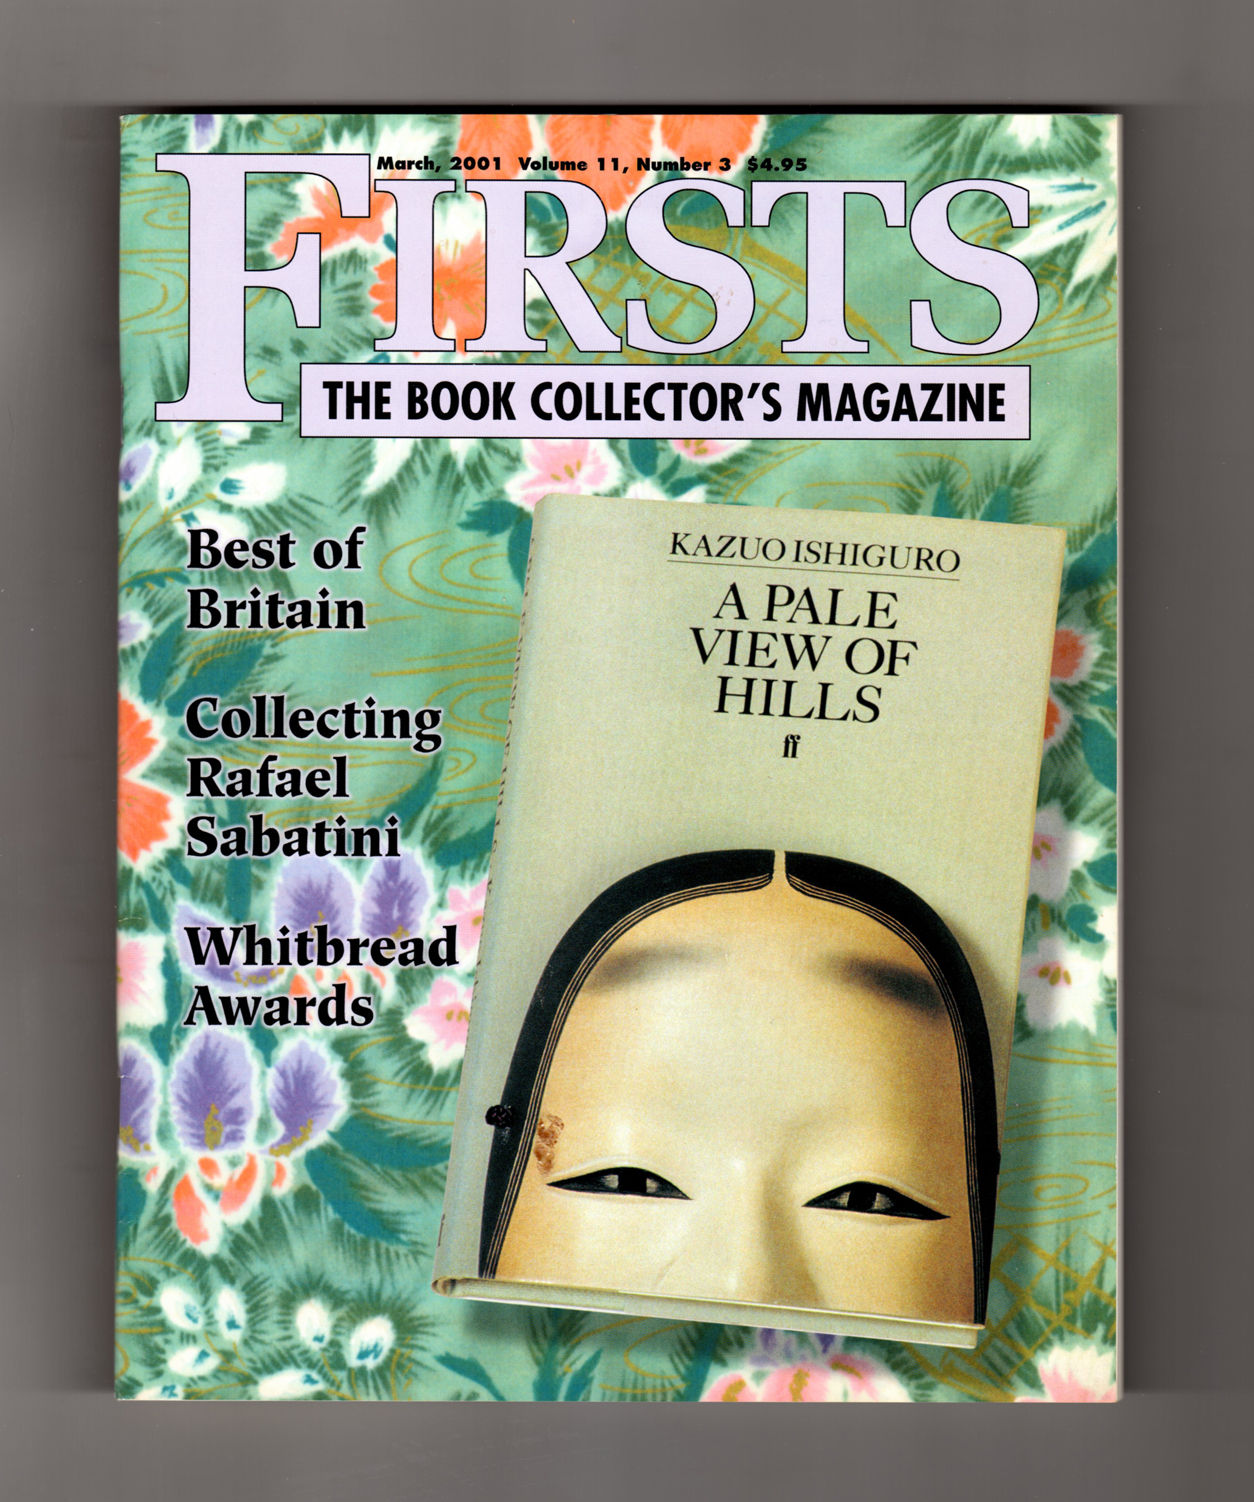 a pale view of hills marxism perspective 1982: a pale view of the hills, kazuo ishiguro's first novel, won the winifred   novel is narrated by only etsuko from only her point of view.